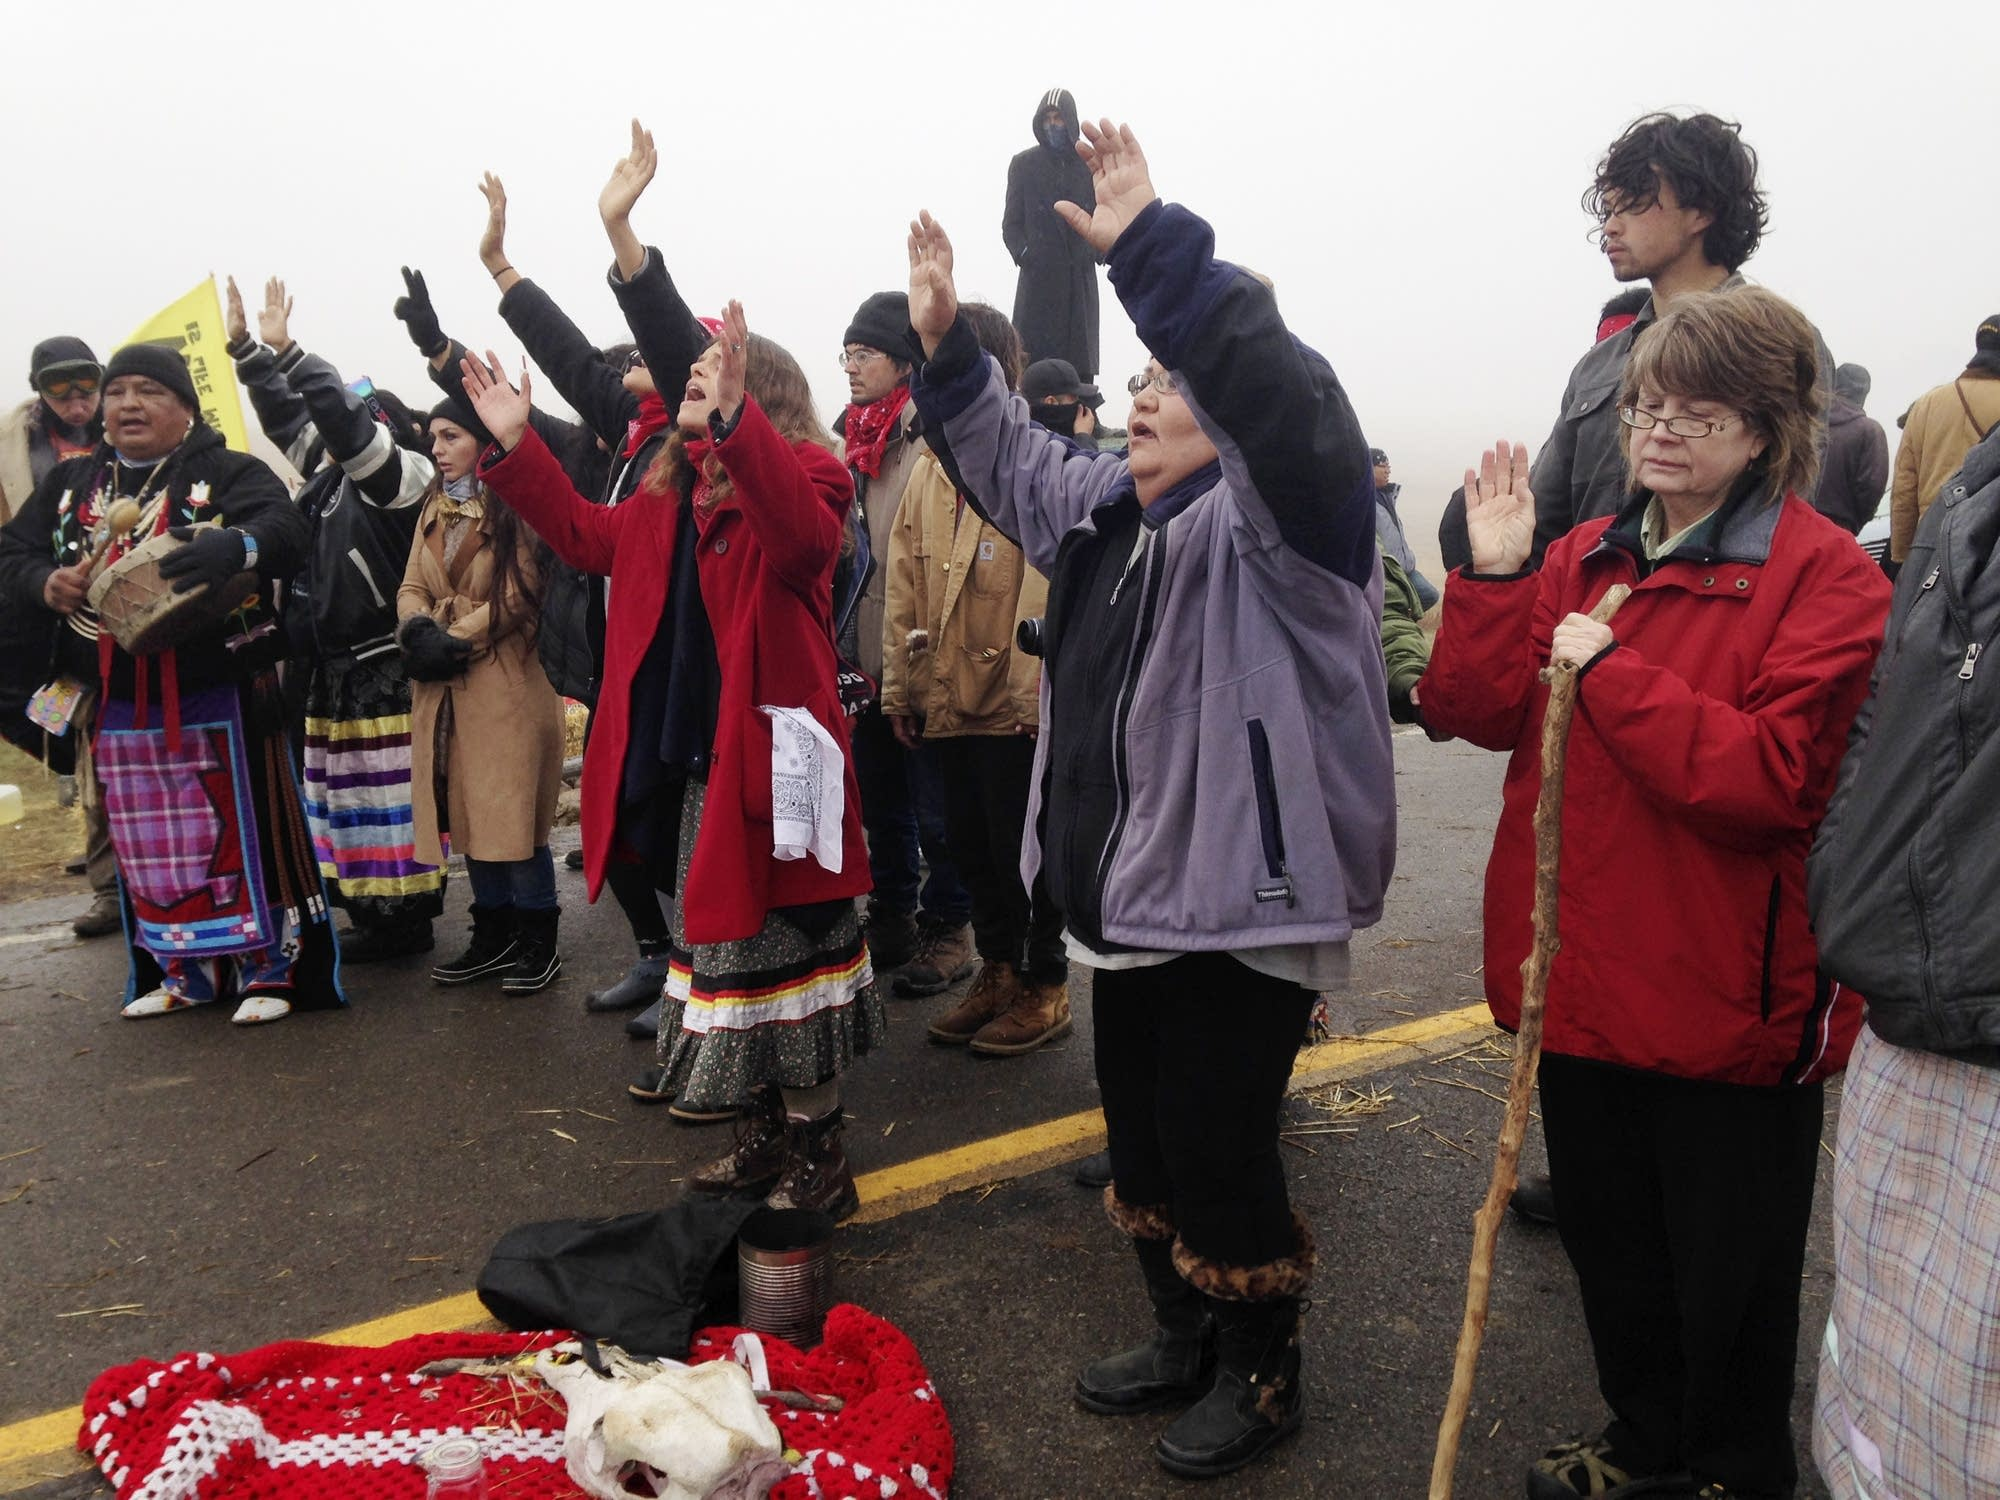 Oil pipeline protesters brace for confrontation with police